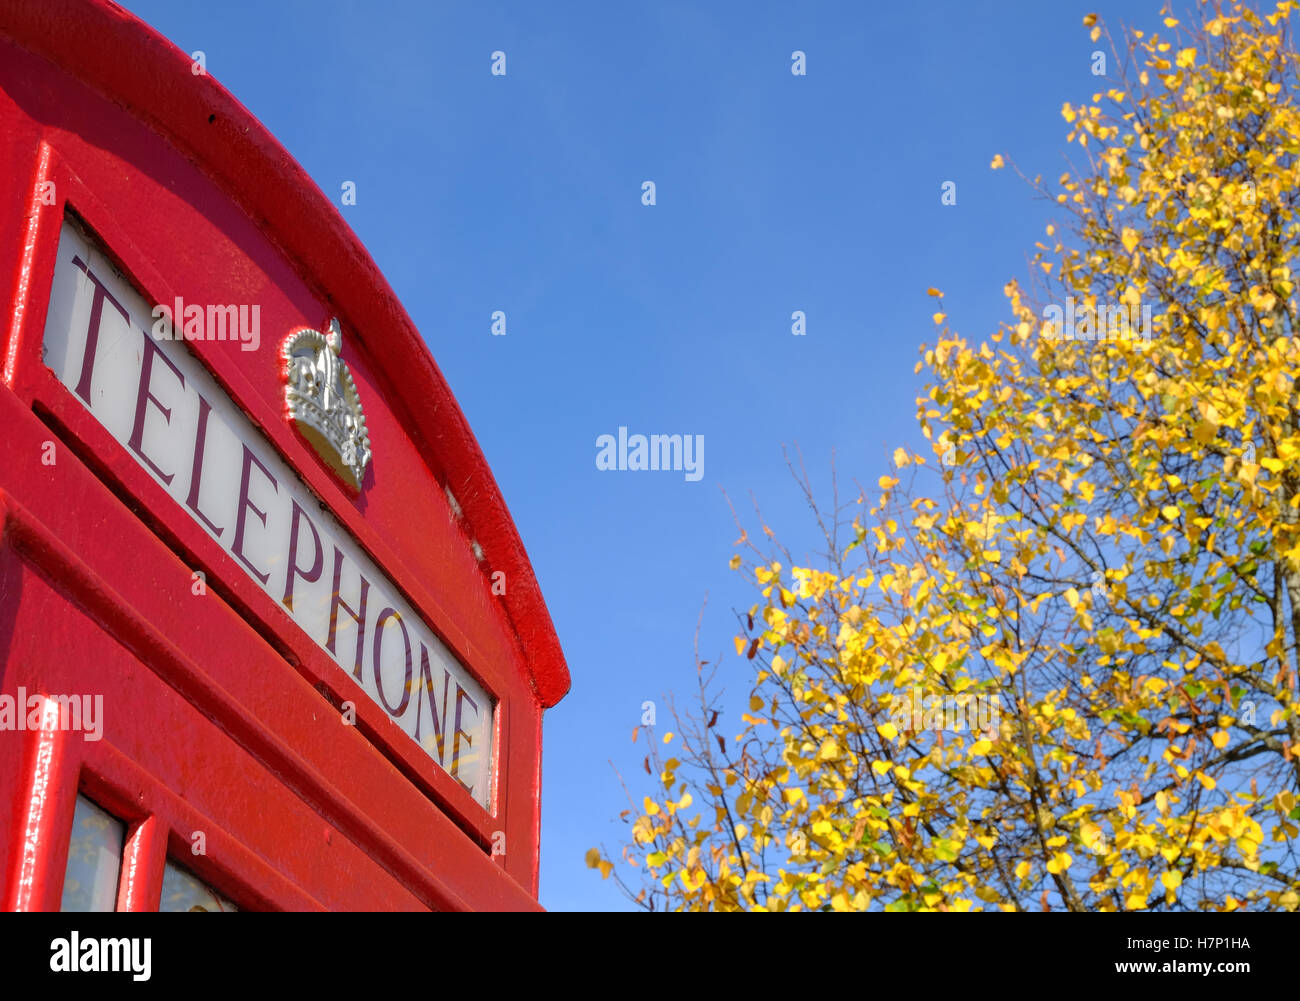 telephone kiosk on an English street - Stock Image